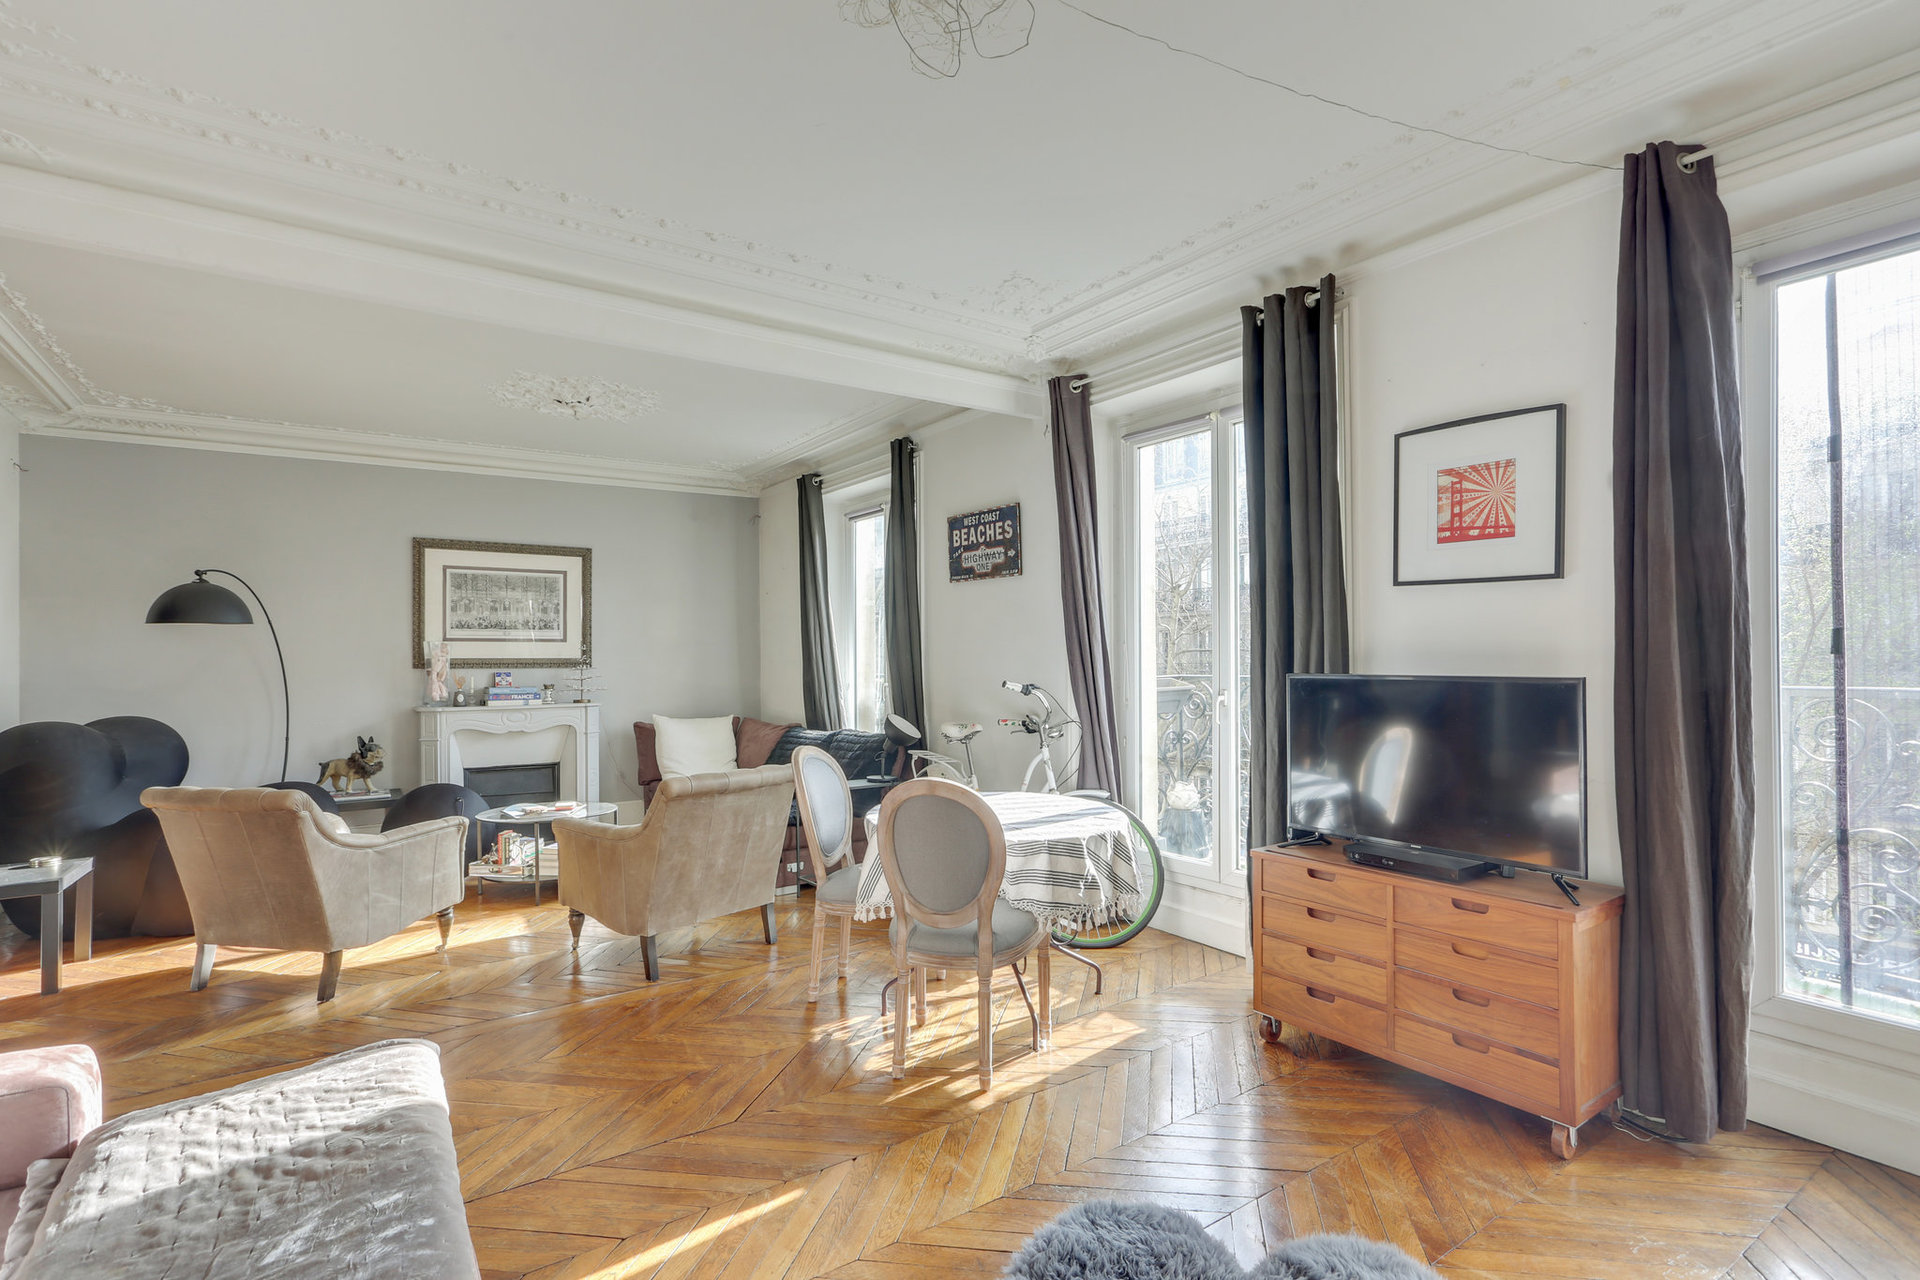 Vente Appartement - Paris 10ème Saint-Vincent-de-Paul